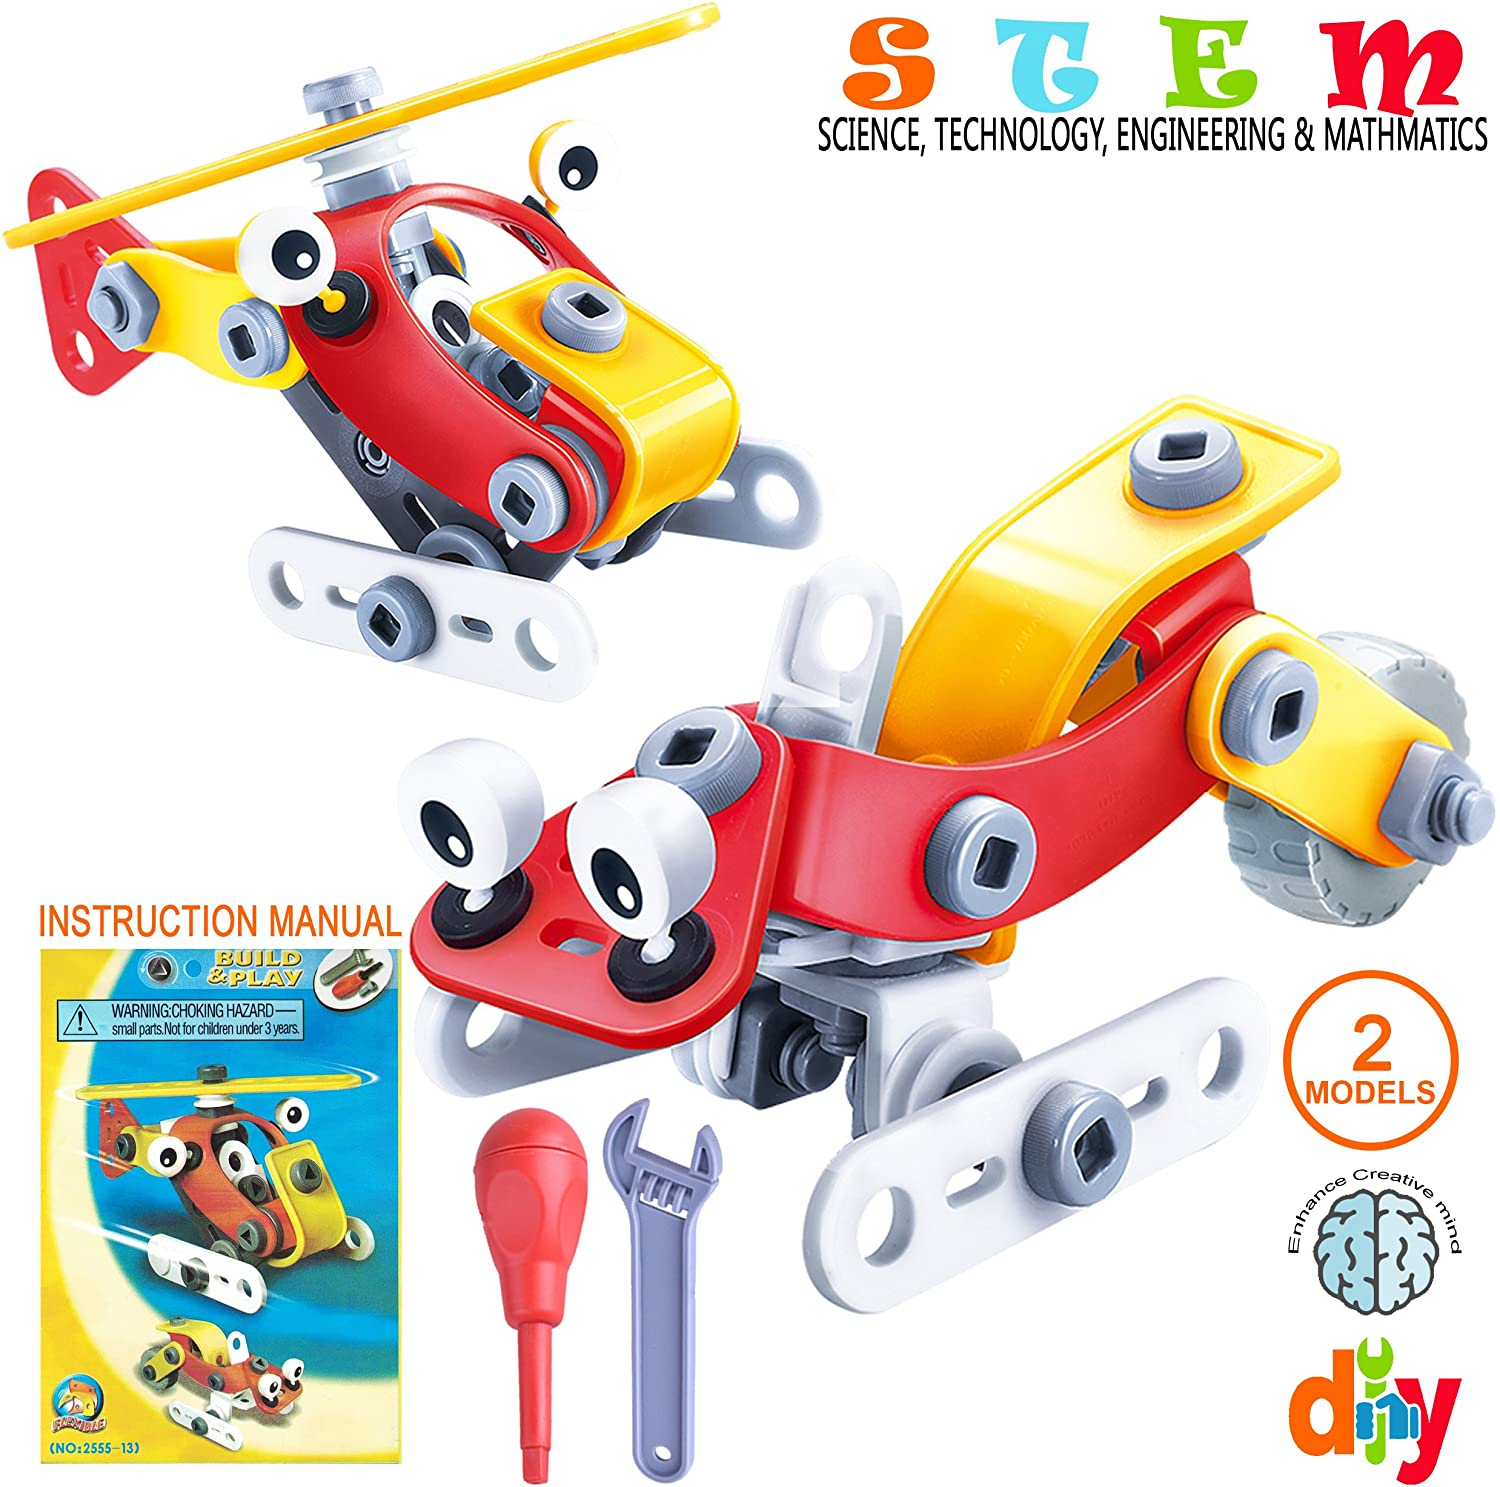 SAKIBO STEM Toys Kit Science Technology Engineering and Math Toys Creative Learning Building Blocks Set Best Toy Gift for Kids Boys Girls Aged 3 4 5 6+ (Helicopter - Snowmobile)